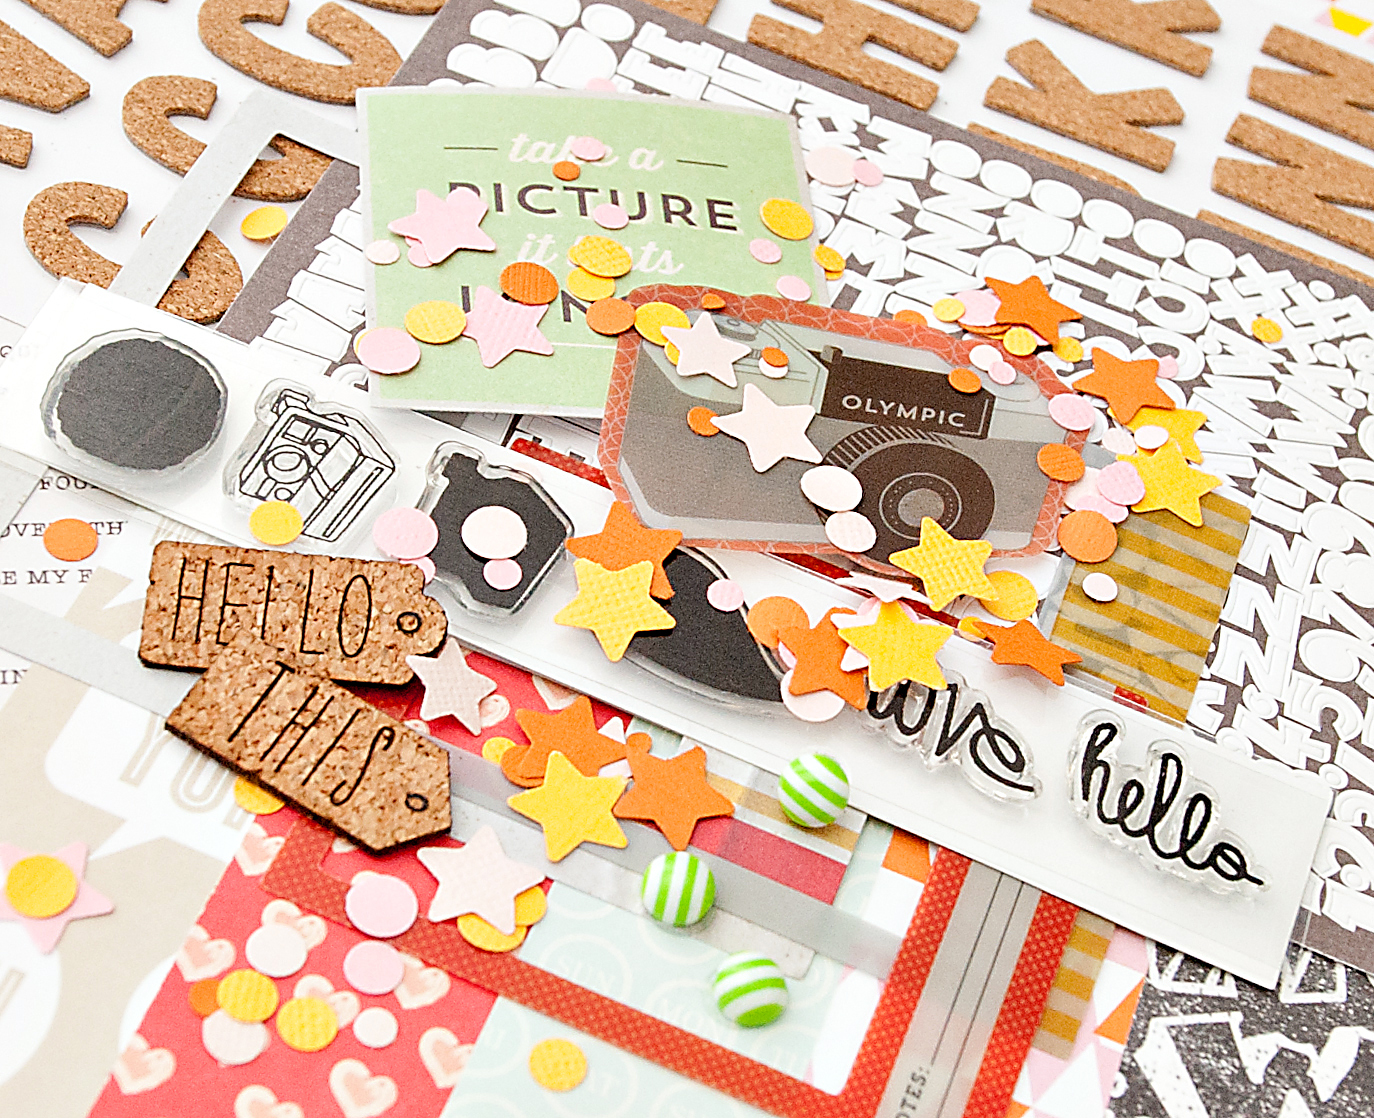 Picture 4 of VALLEY HIGH Scrapbook Kit